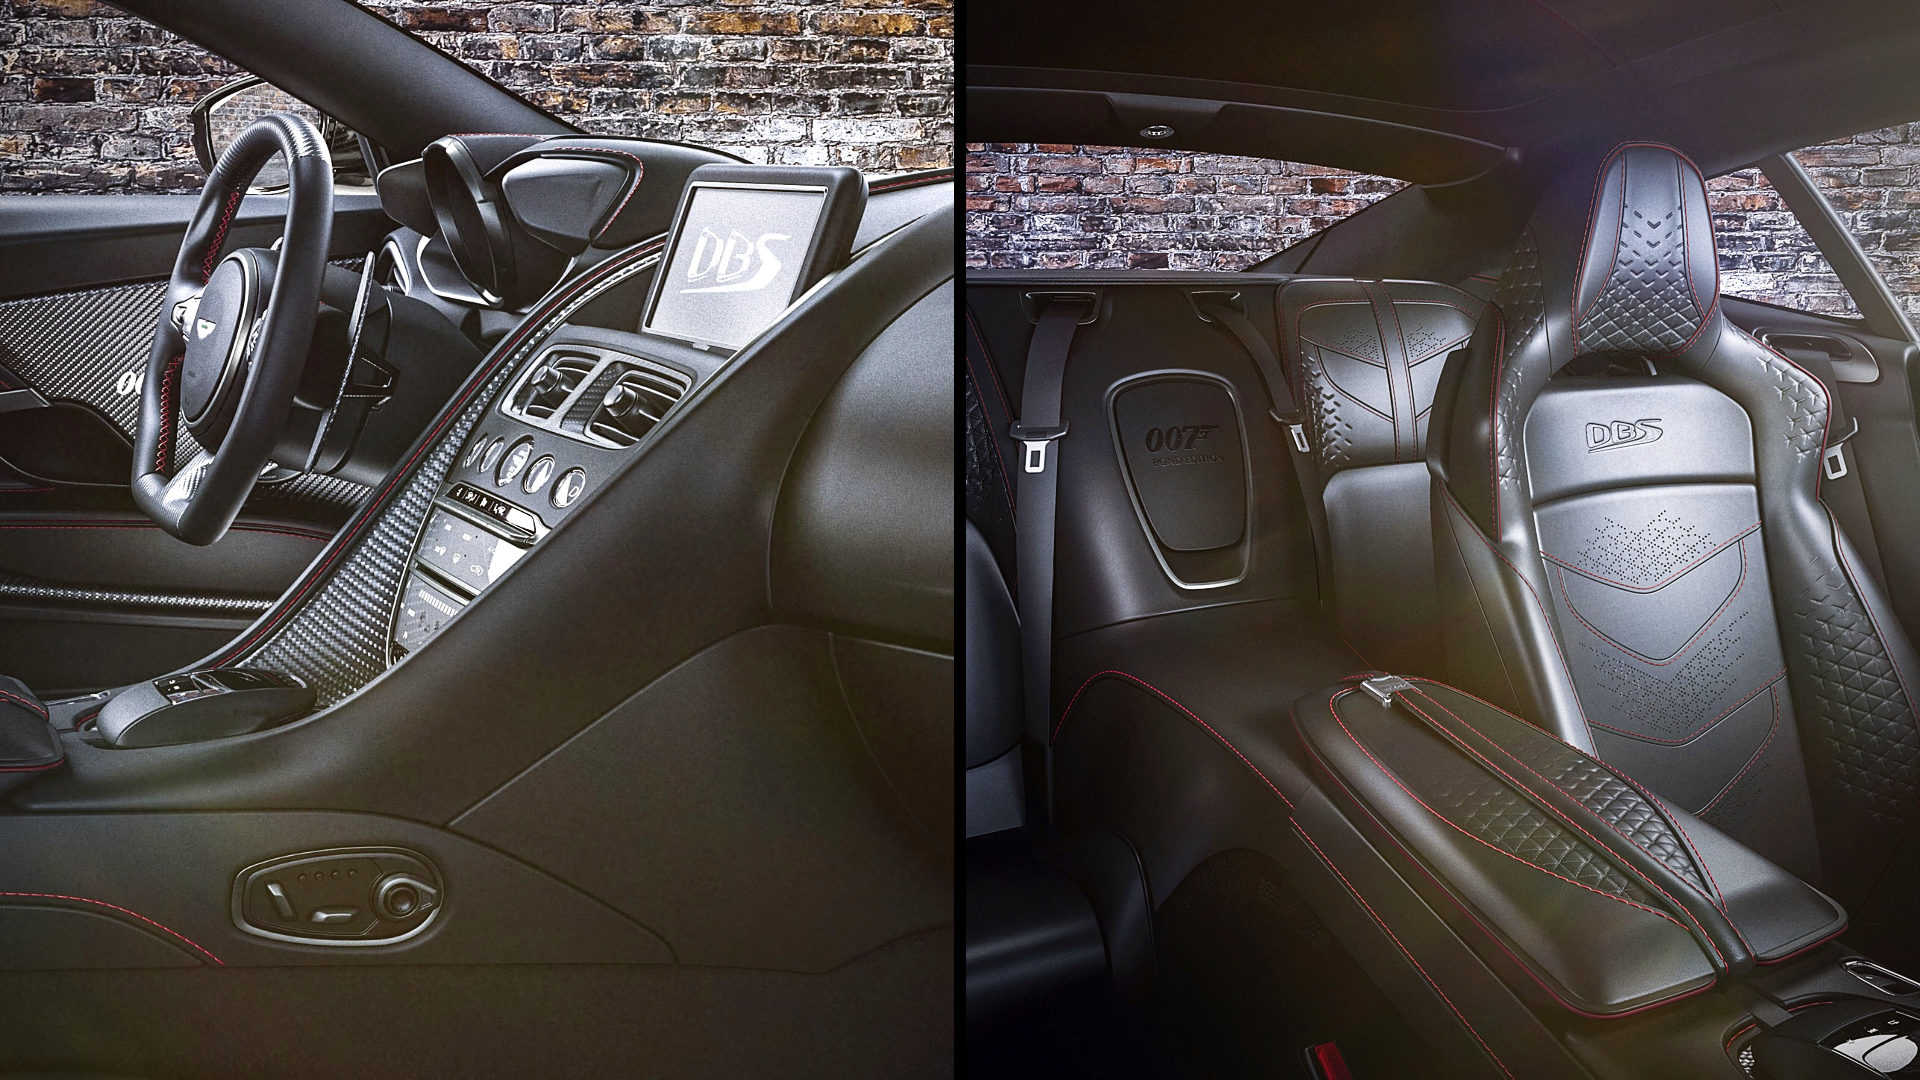 2021 Aston Martin Dbs Superleggera 007 Edition Interior